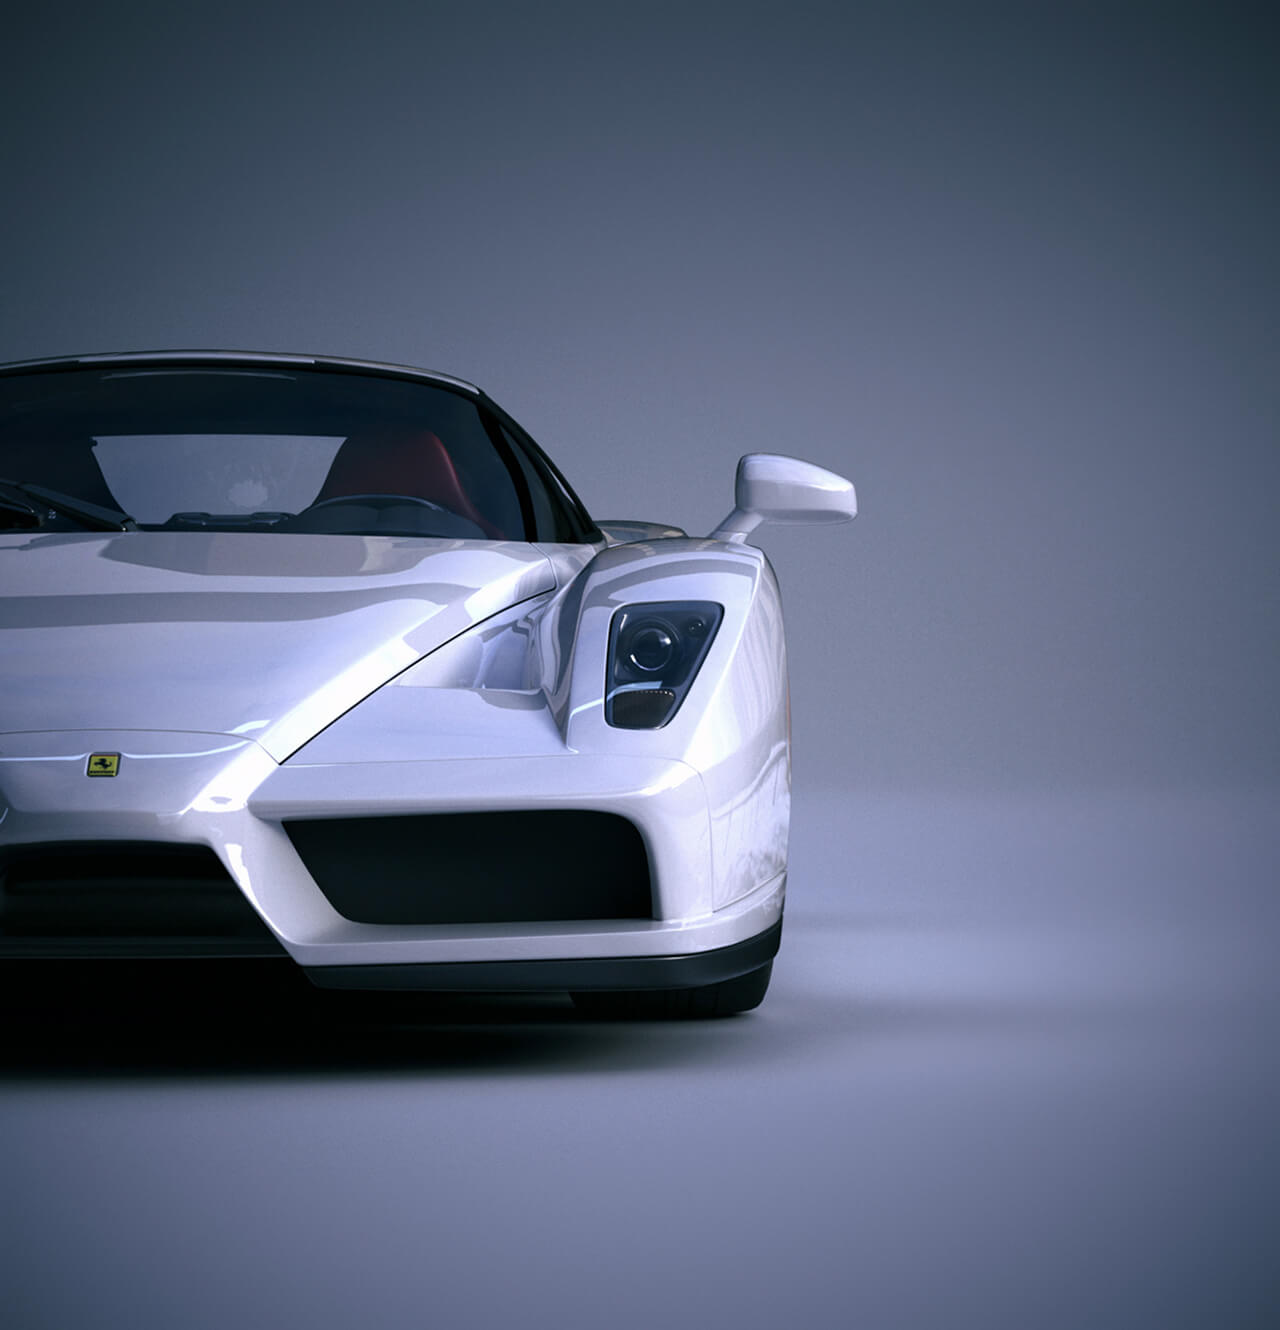 Computer generated image of front of white Ferrari sports car